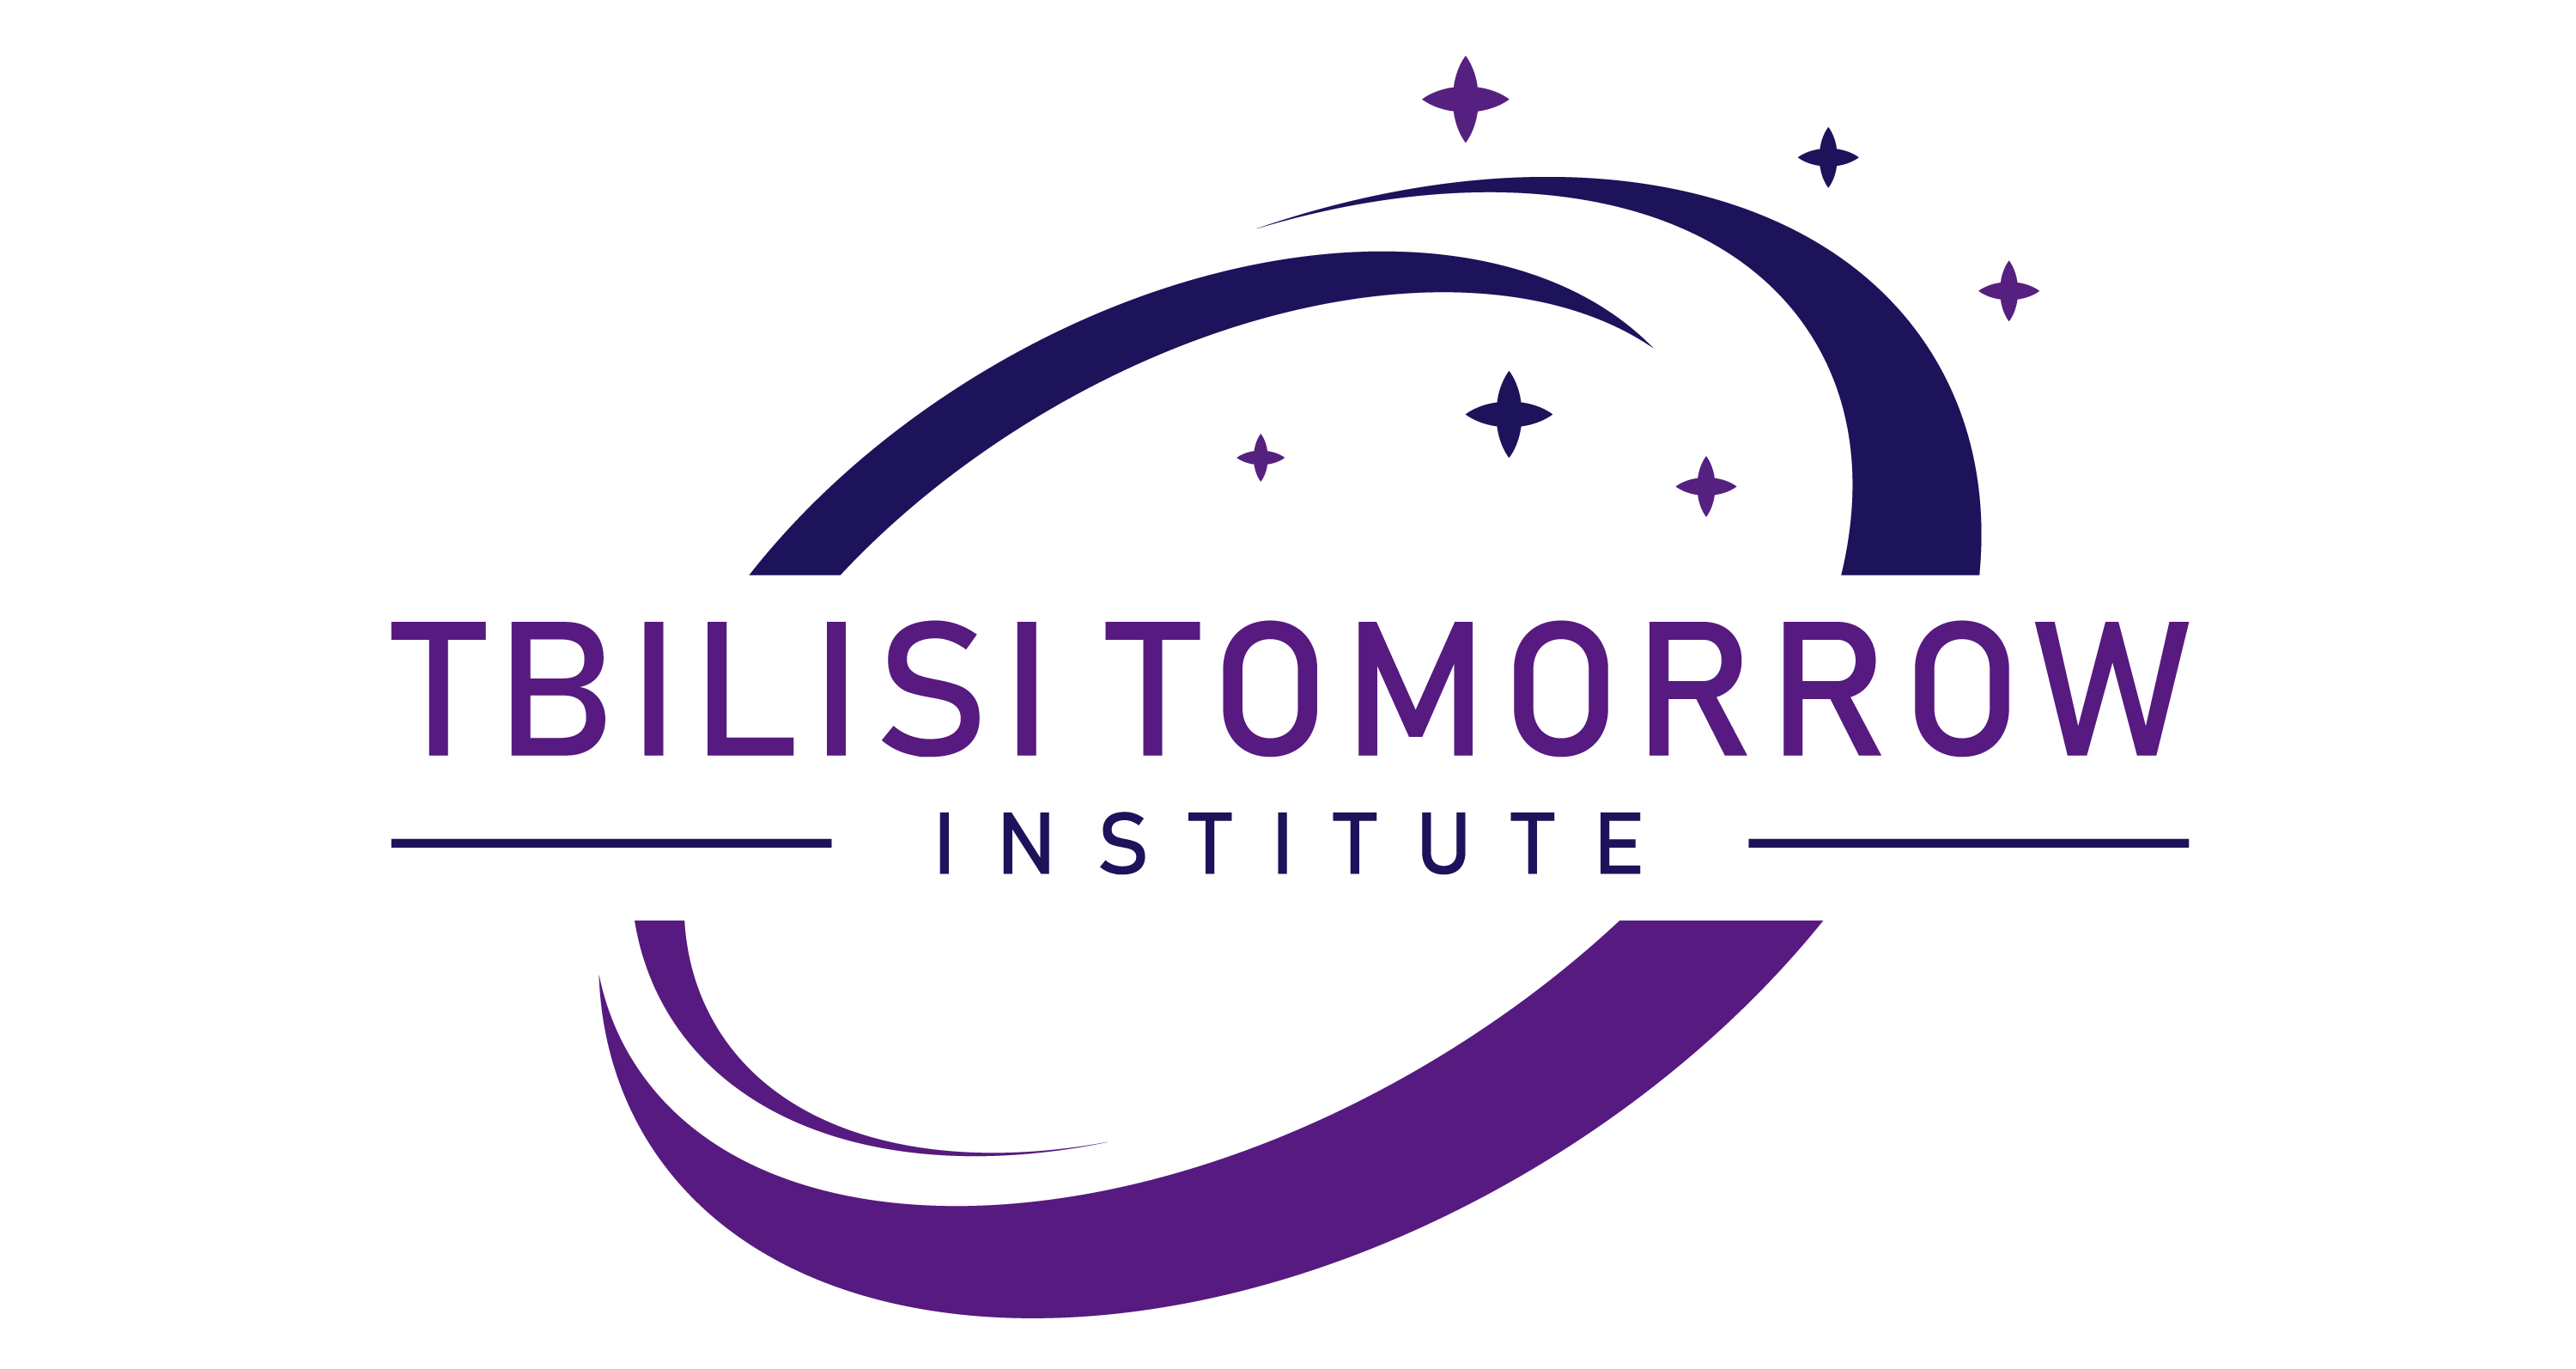 Tbilisi Tomorrow Institute